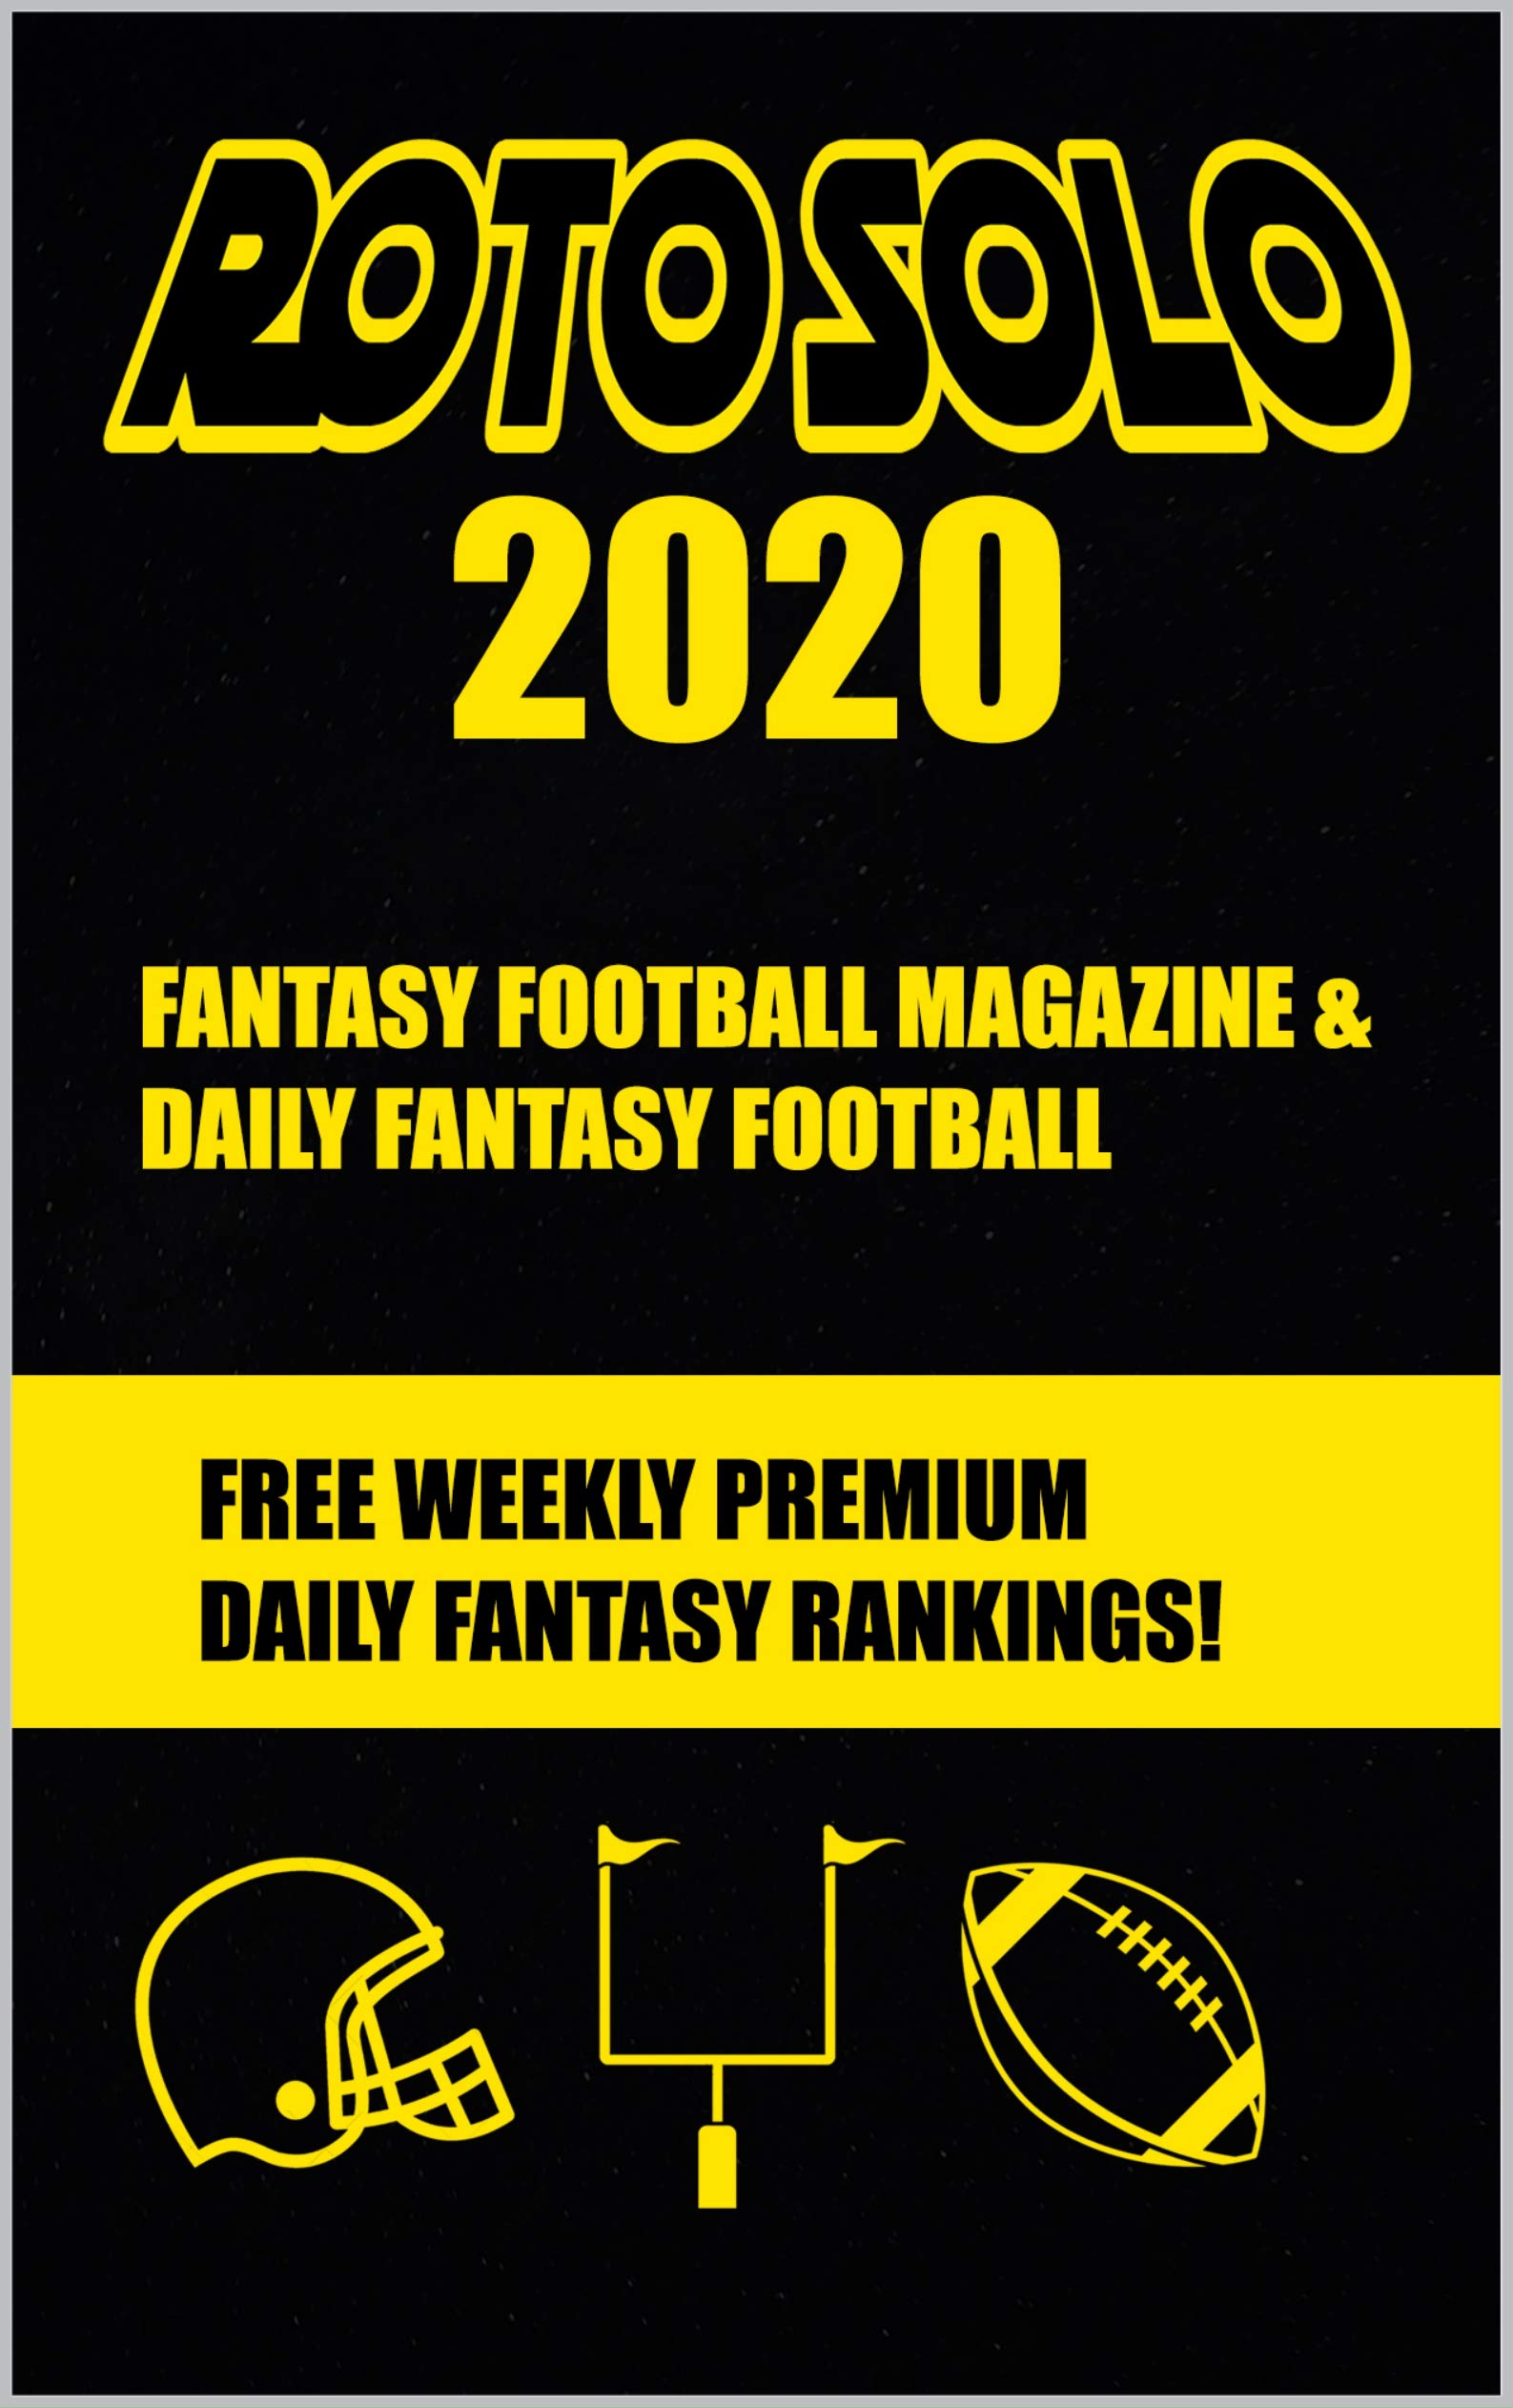 Roto Solo 2020 Fantasy Football and Daily Fantasy Football Magazine